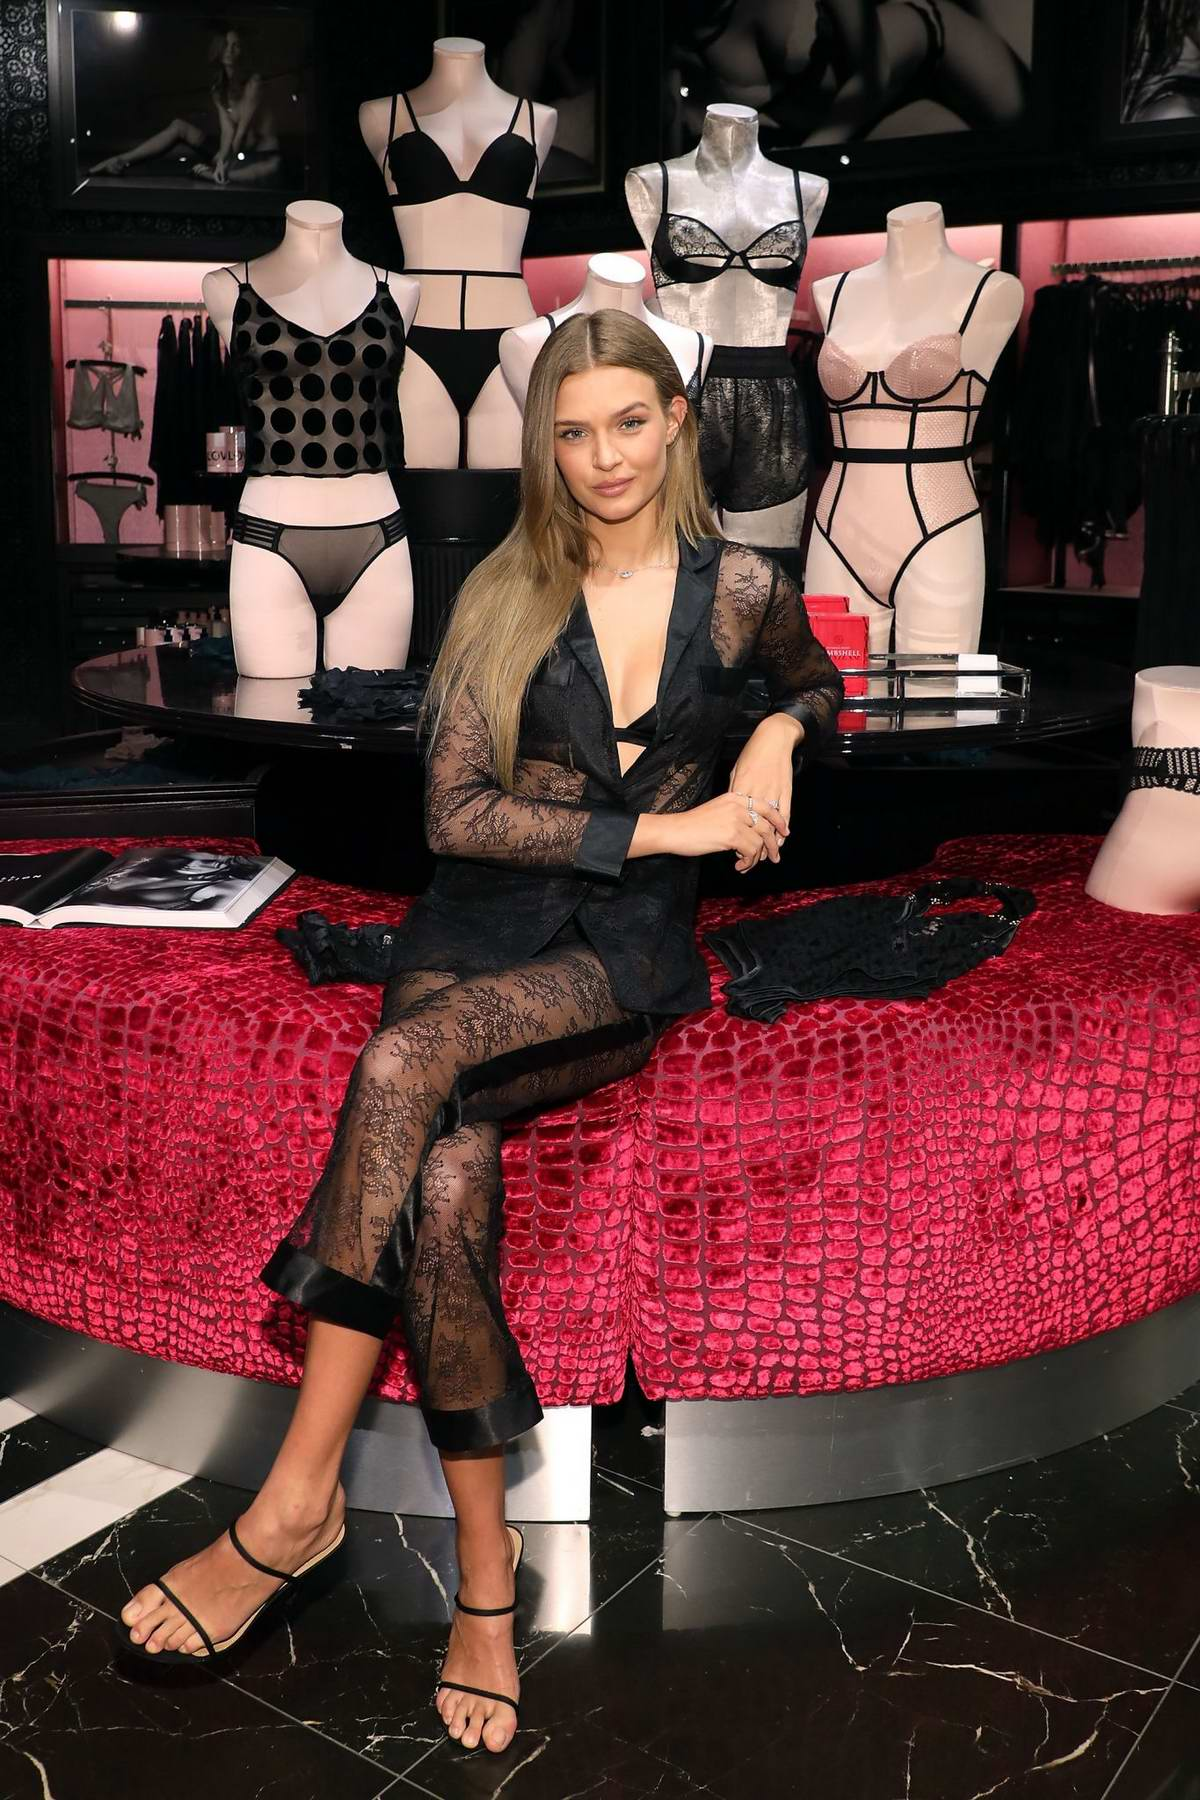 Josephine Skriver attends the debut of Victoria's Secret new Fall Collection in Natick, Massachusetts